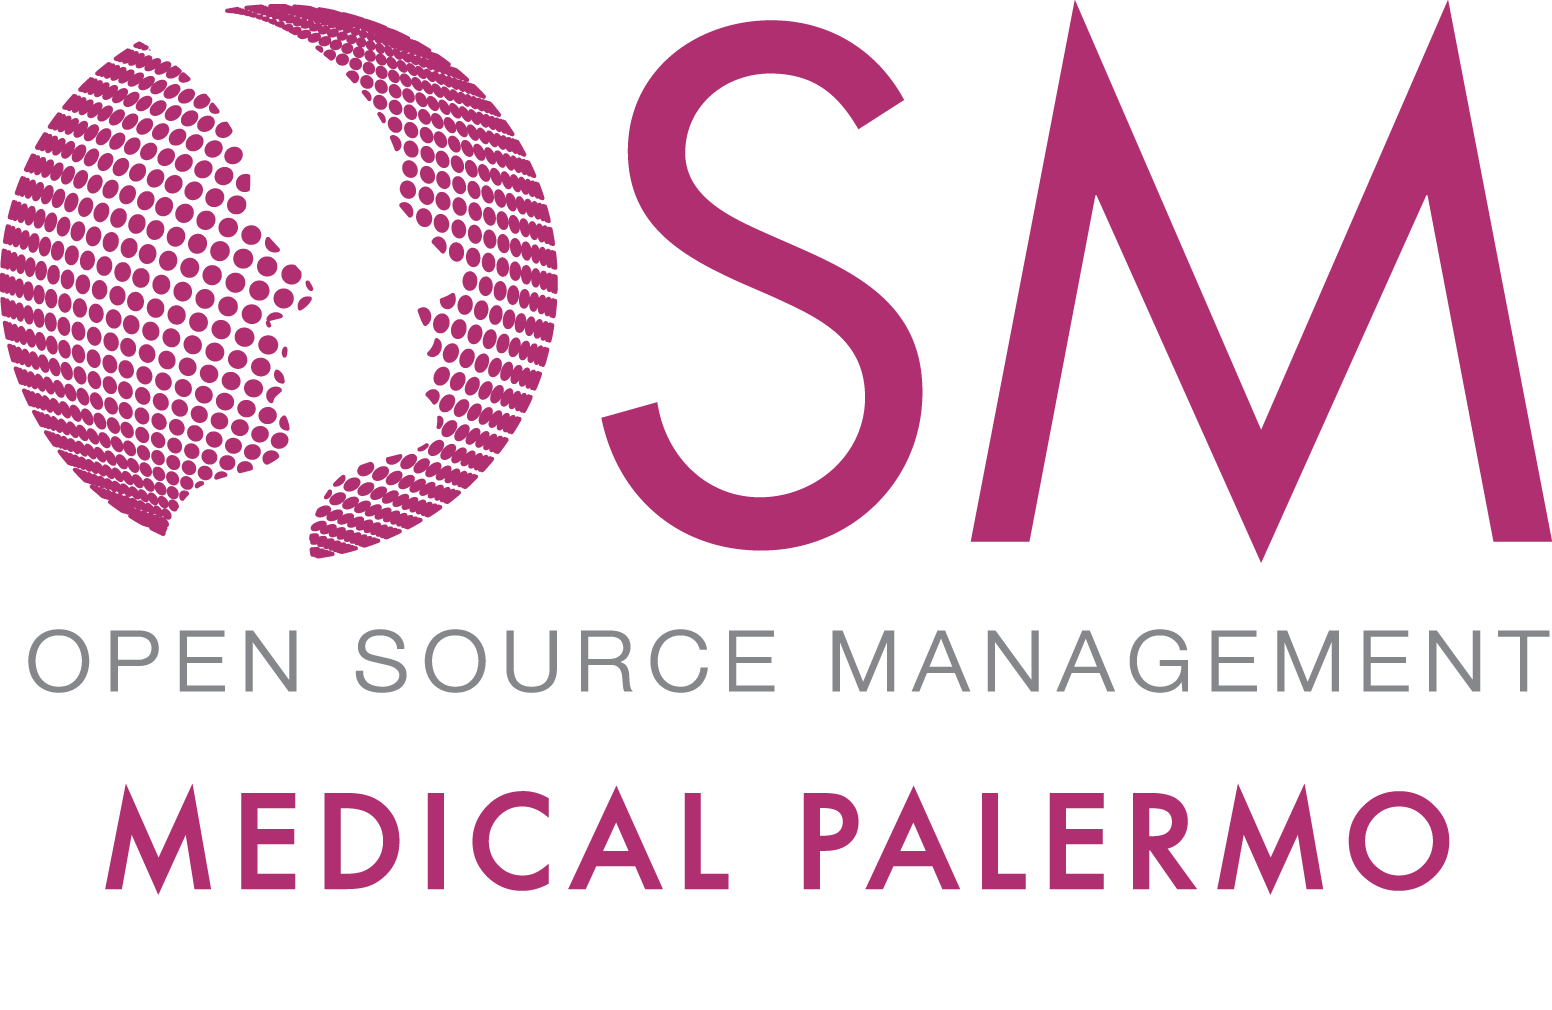 OSM Medical Palermo